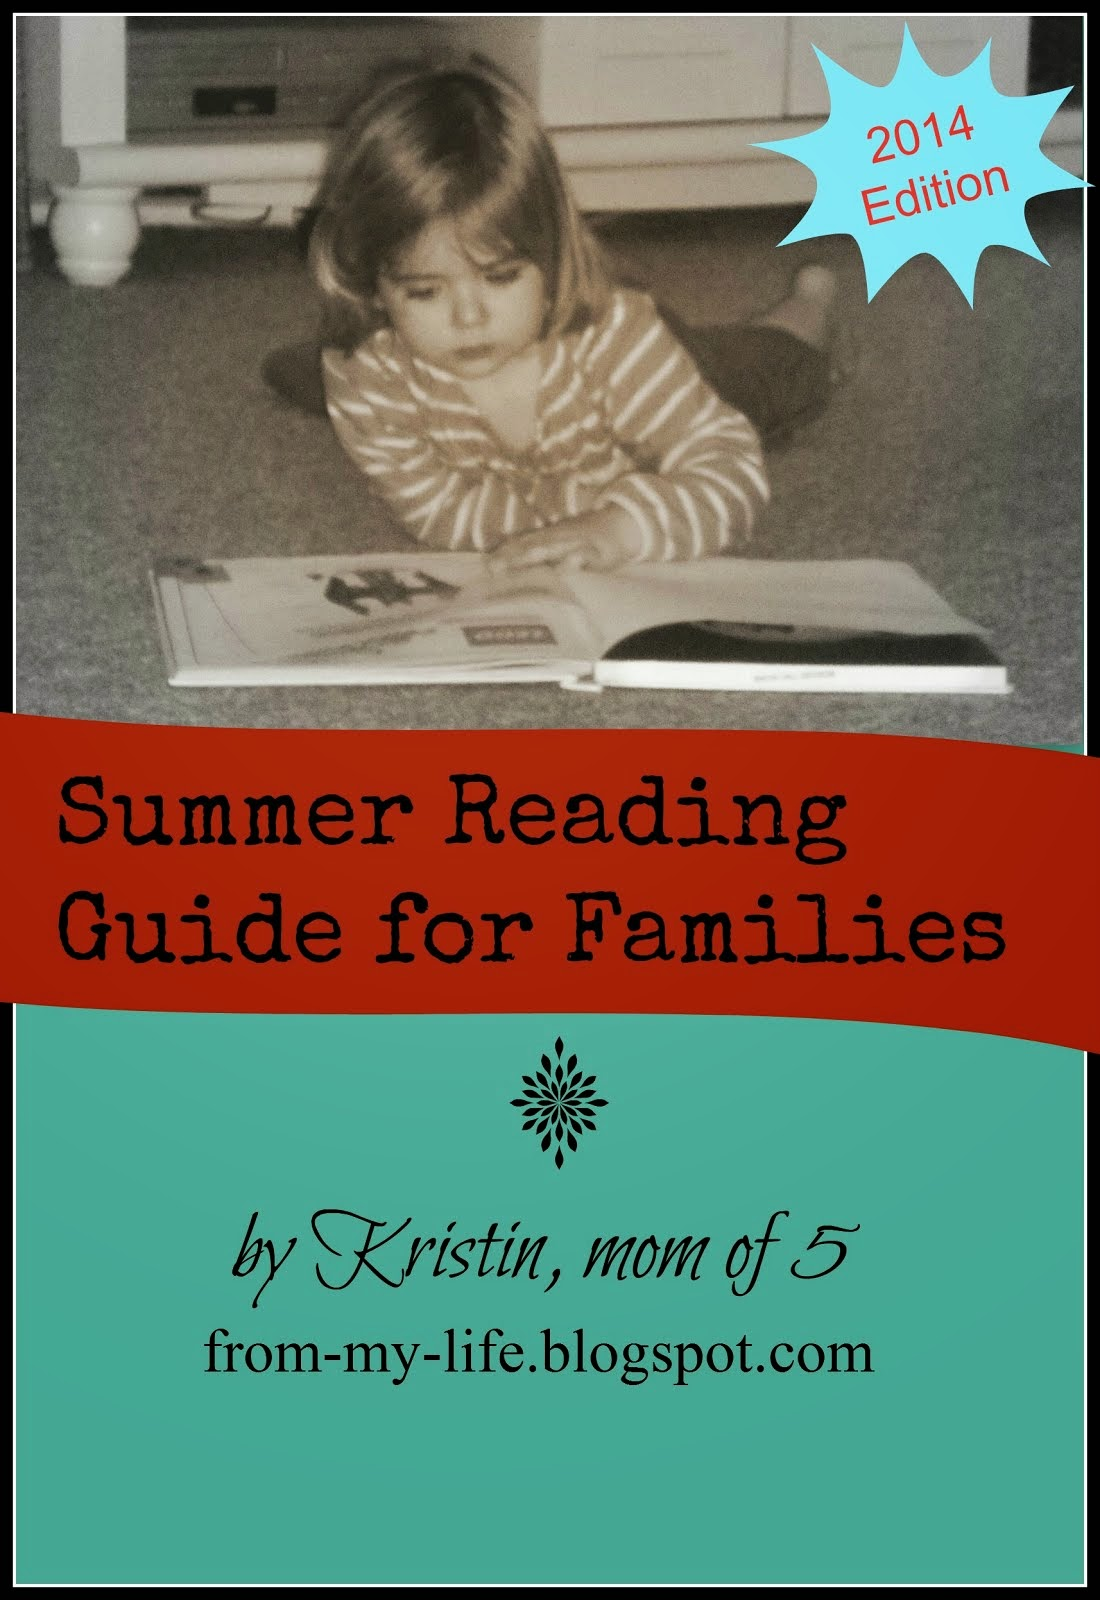 http://from-my-life.blogspot.com/2014/06/familyreading.html